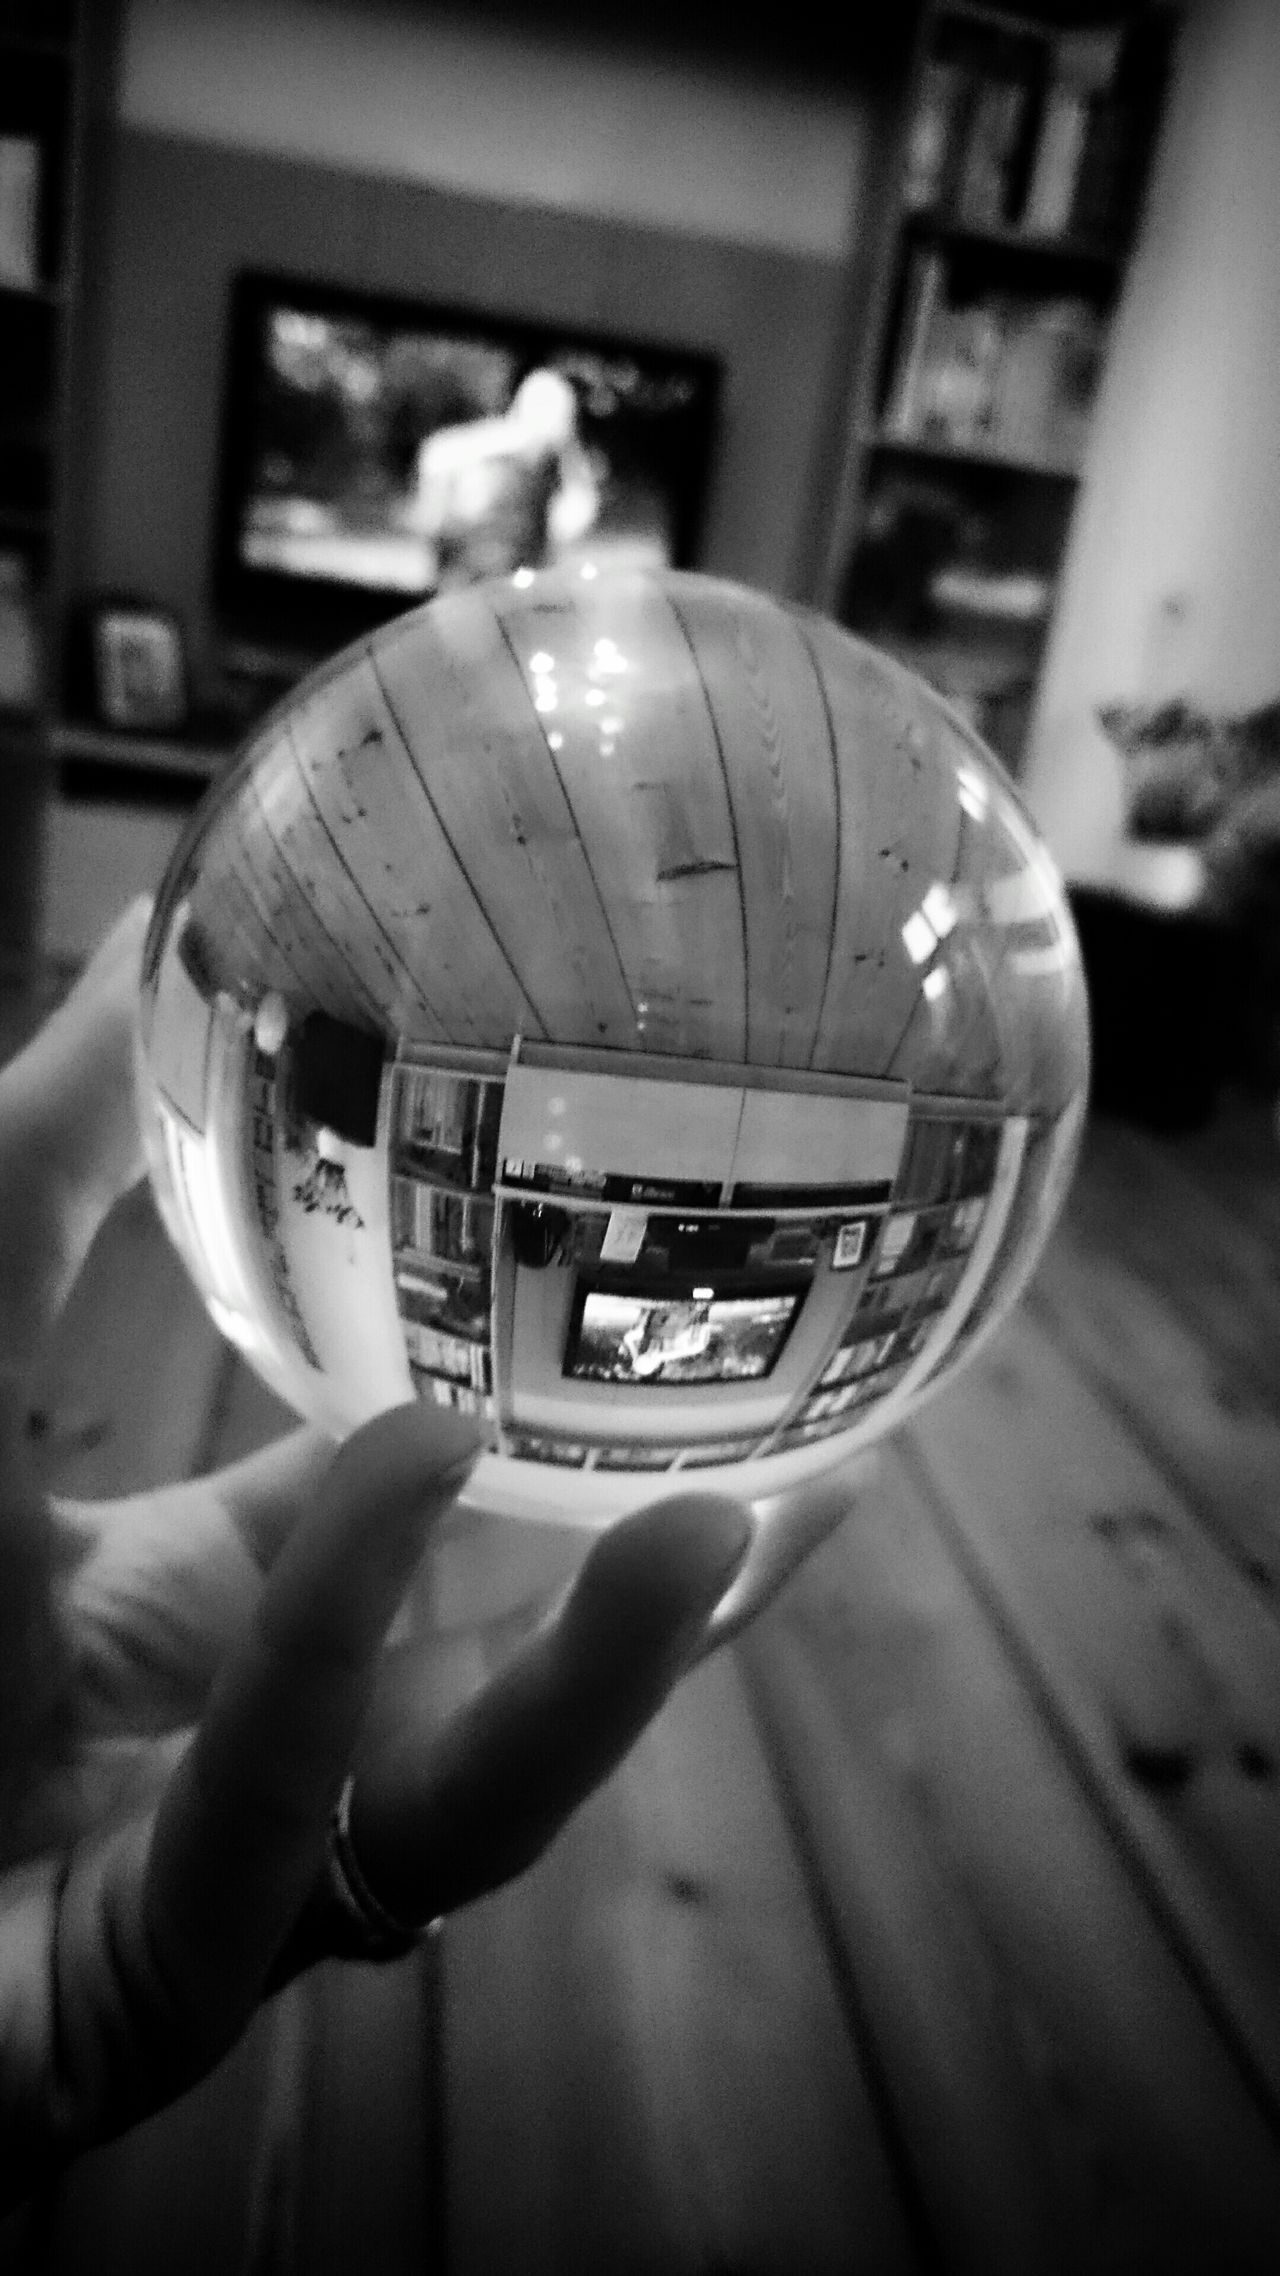 Got my Cristalball and looking forward to the next photowalk. EyeEm Best Shots Blackandwhite Eye4photography  Black & White Cristal Ball Livingroom Blackandwhite Photography